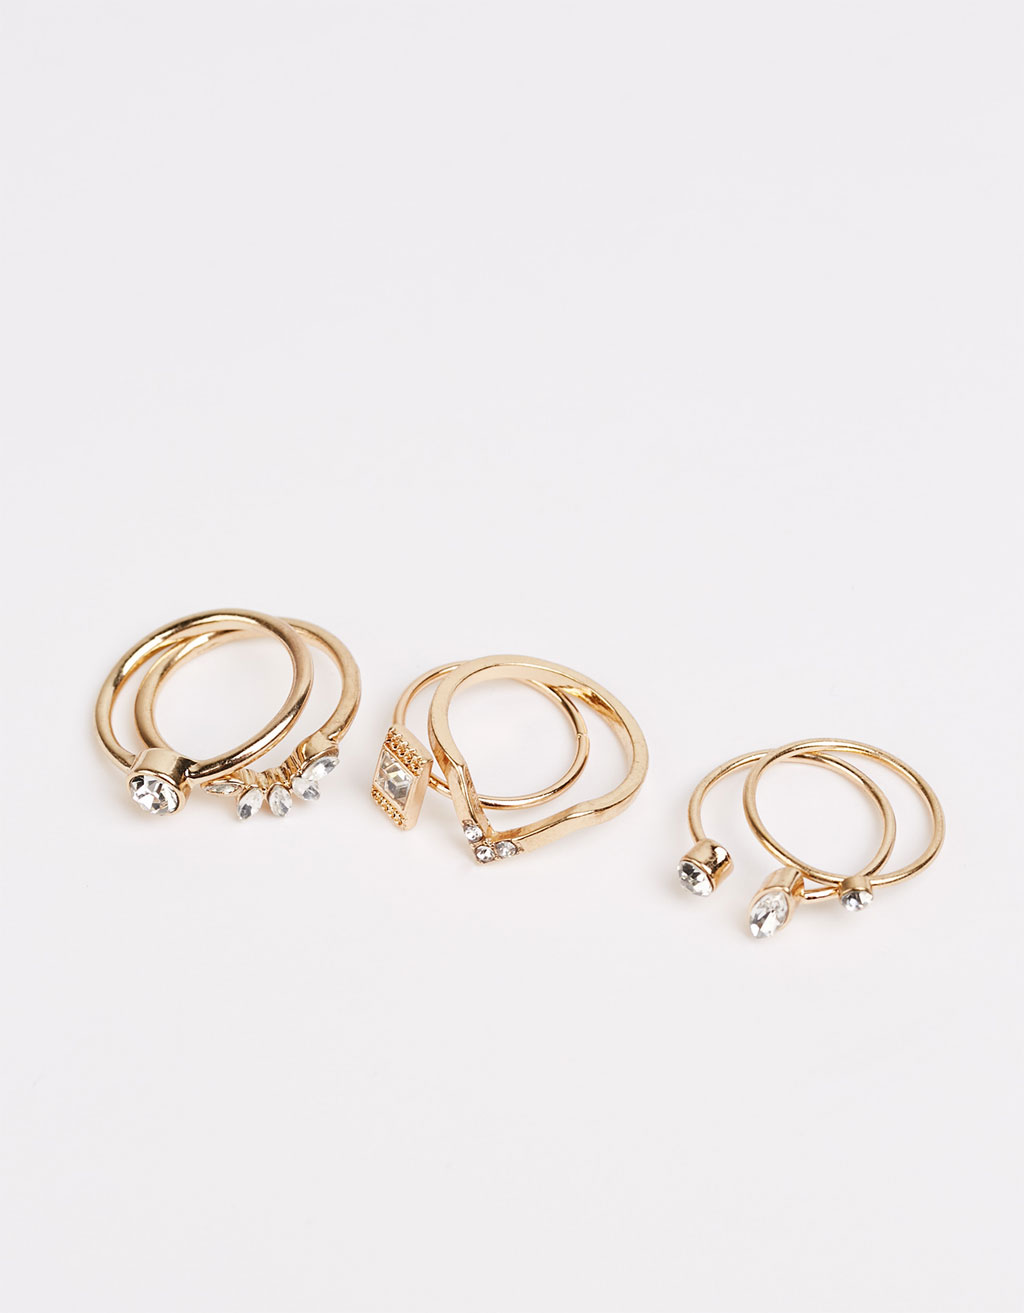 Stone rings (set of 6)